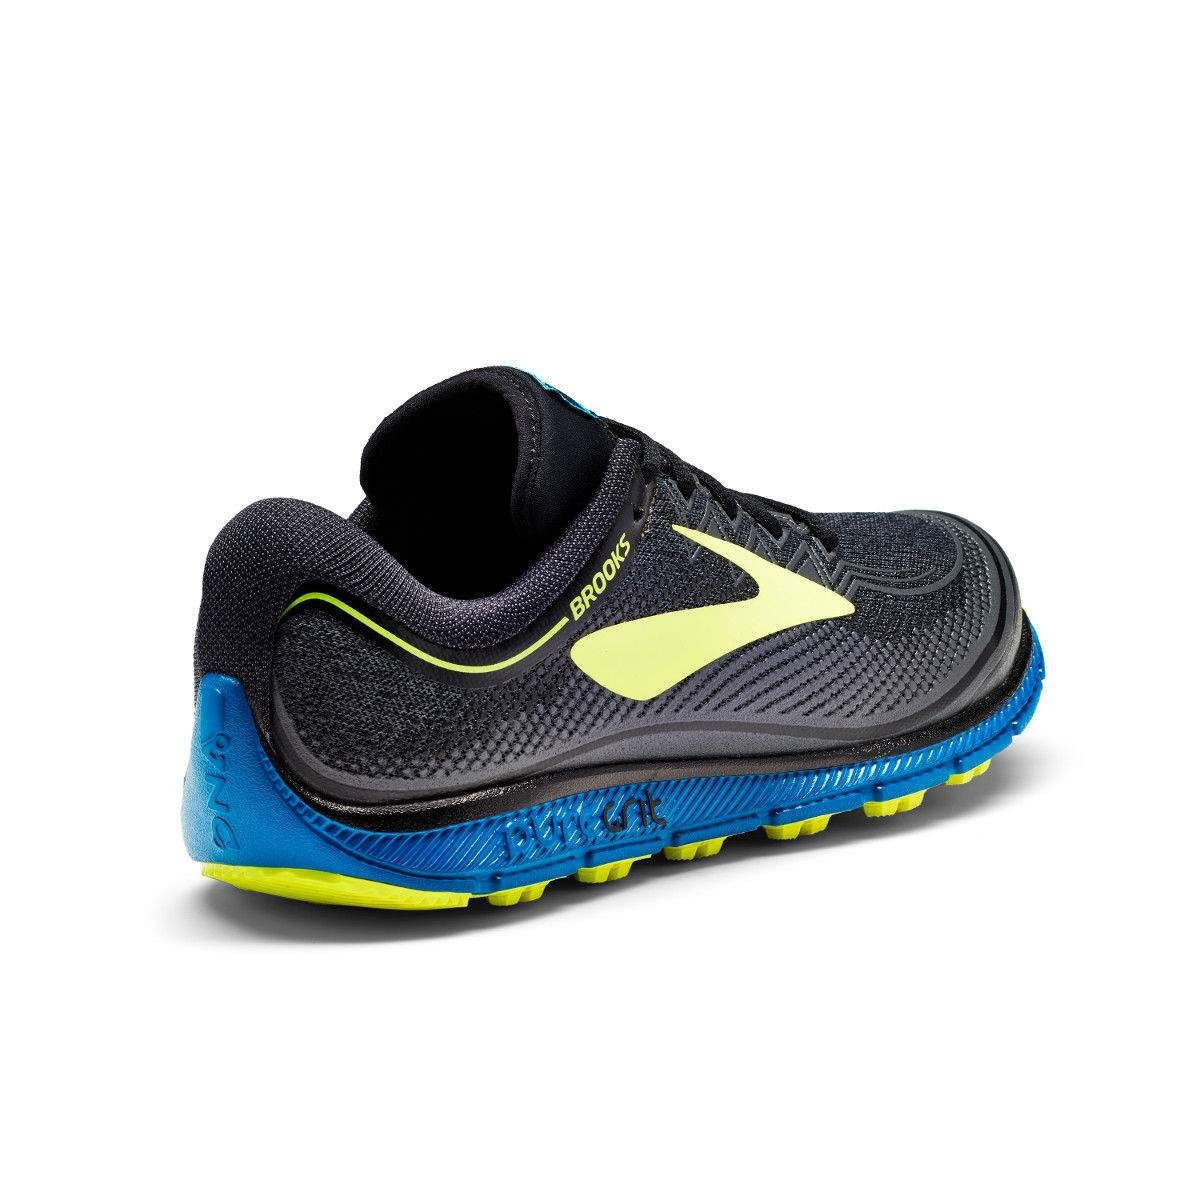 3fd1906f423 The new Brooks PureGrit 6 trail-running shoe for men provides lightweight  agility for off-road adventures.